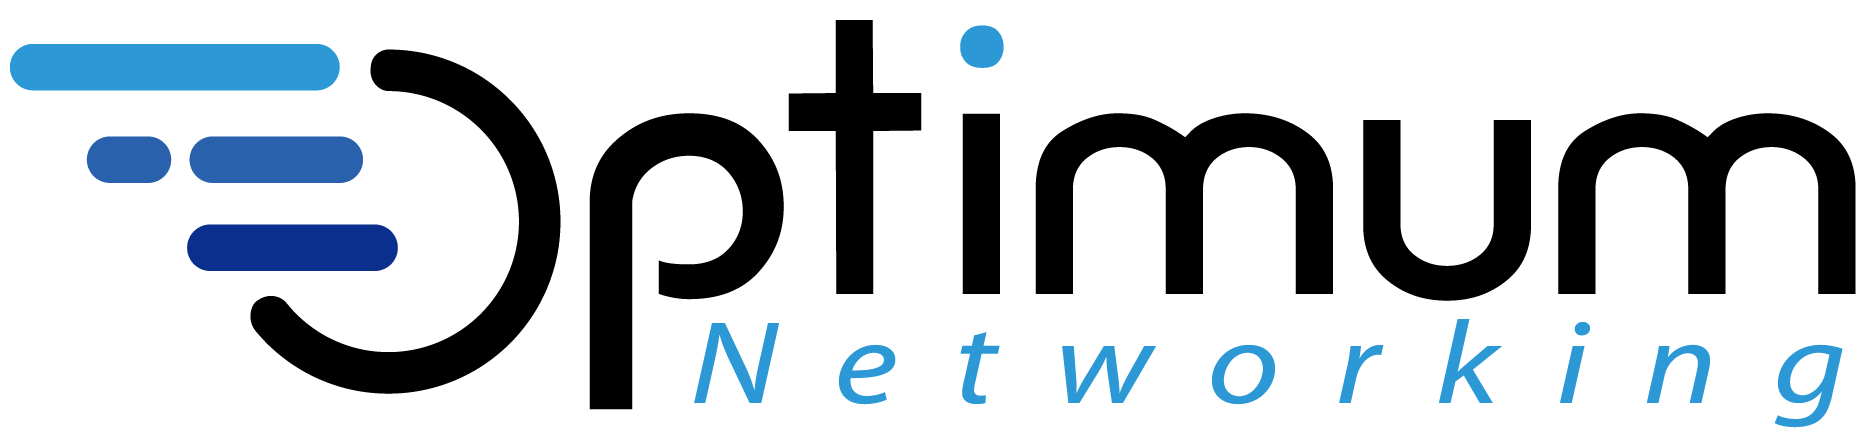 Optimum Networking